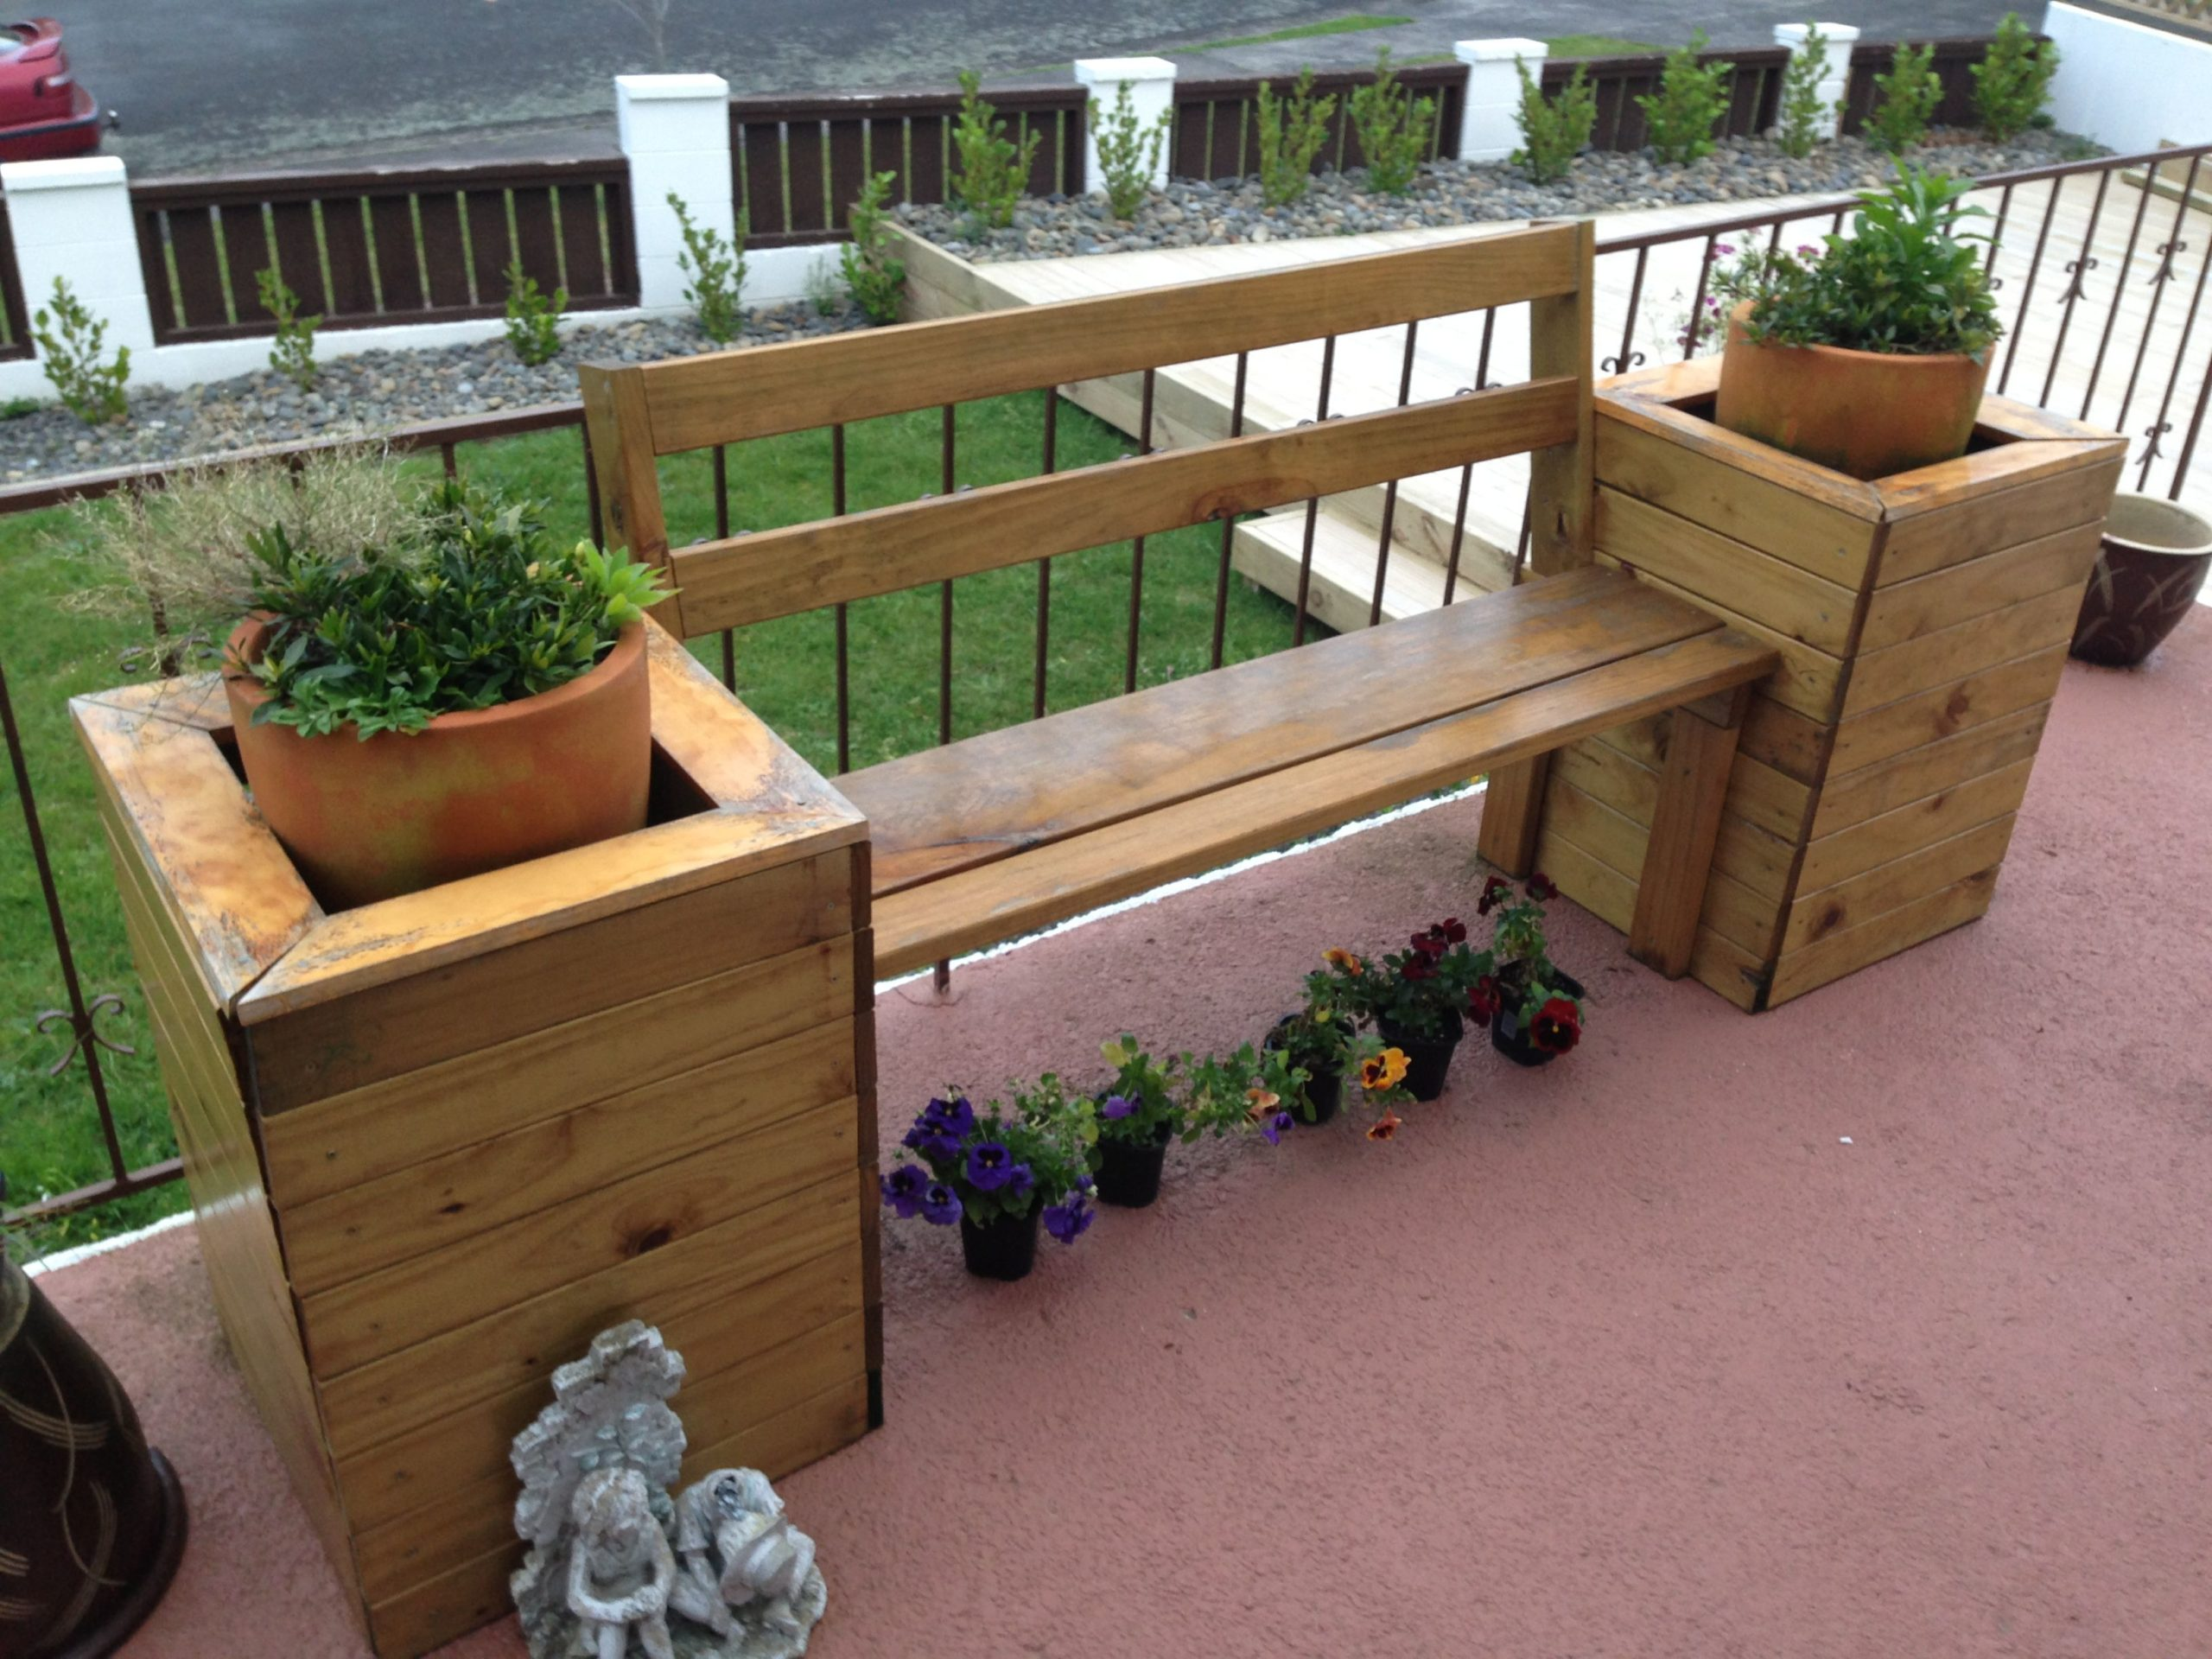 wooden bench with attached planter